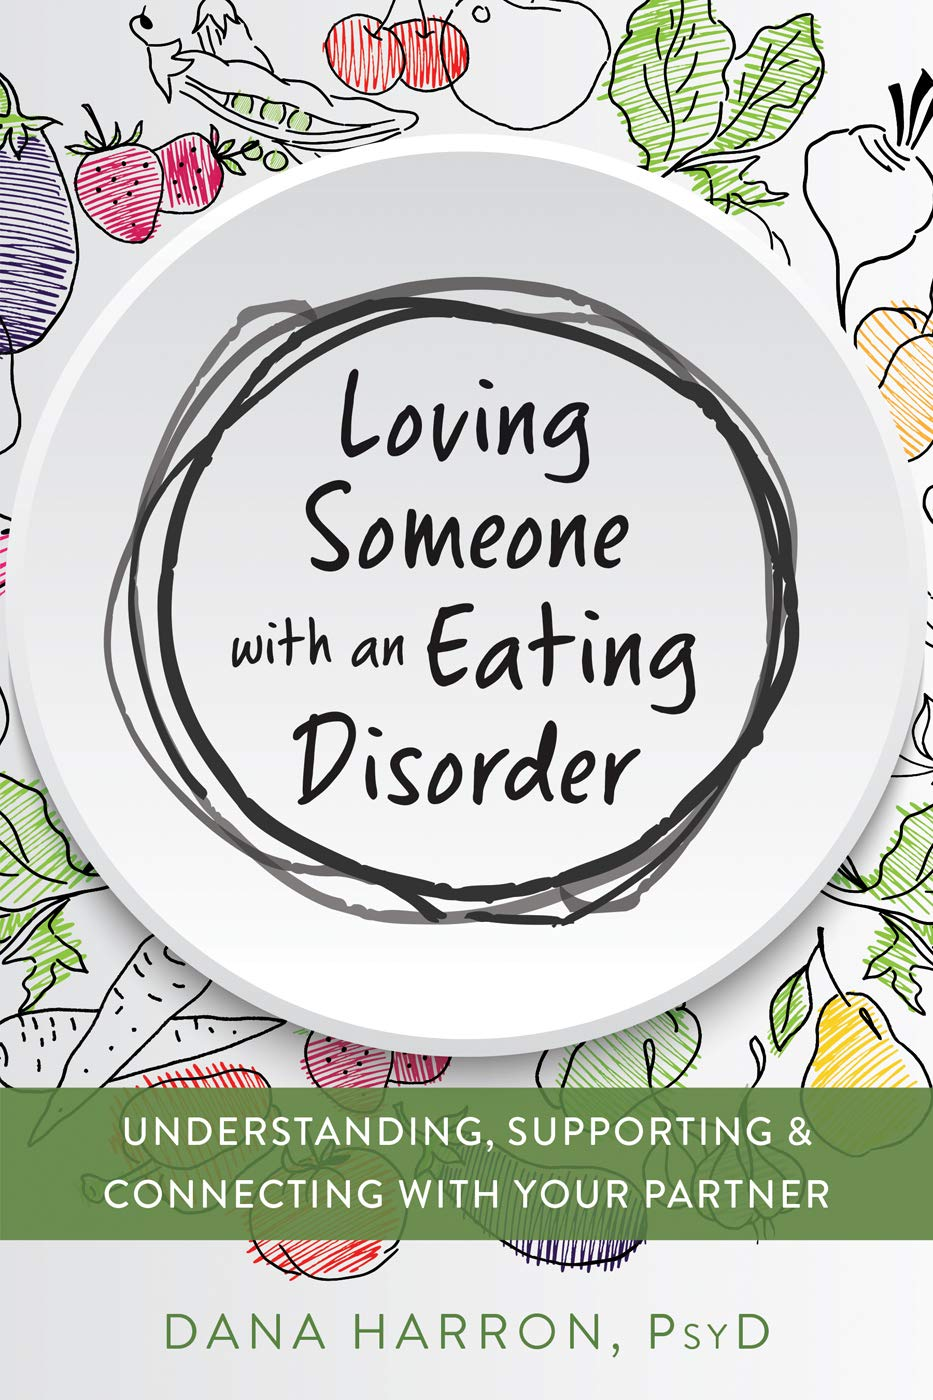 Loving Someone with an Eating Disorder by Dana Harron PsyD book cover